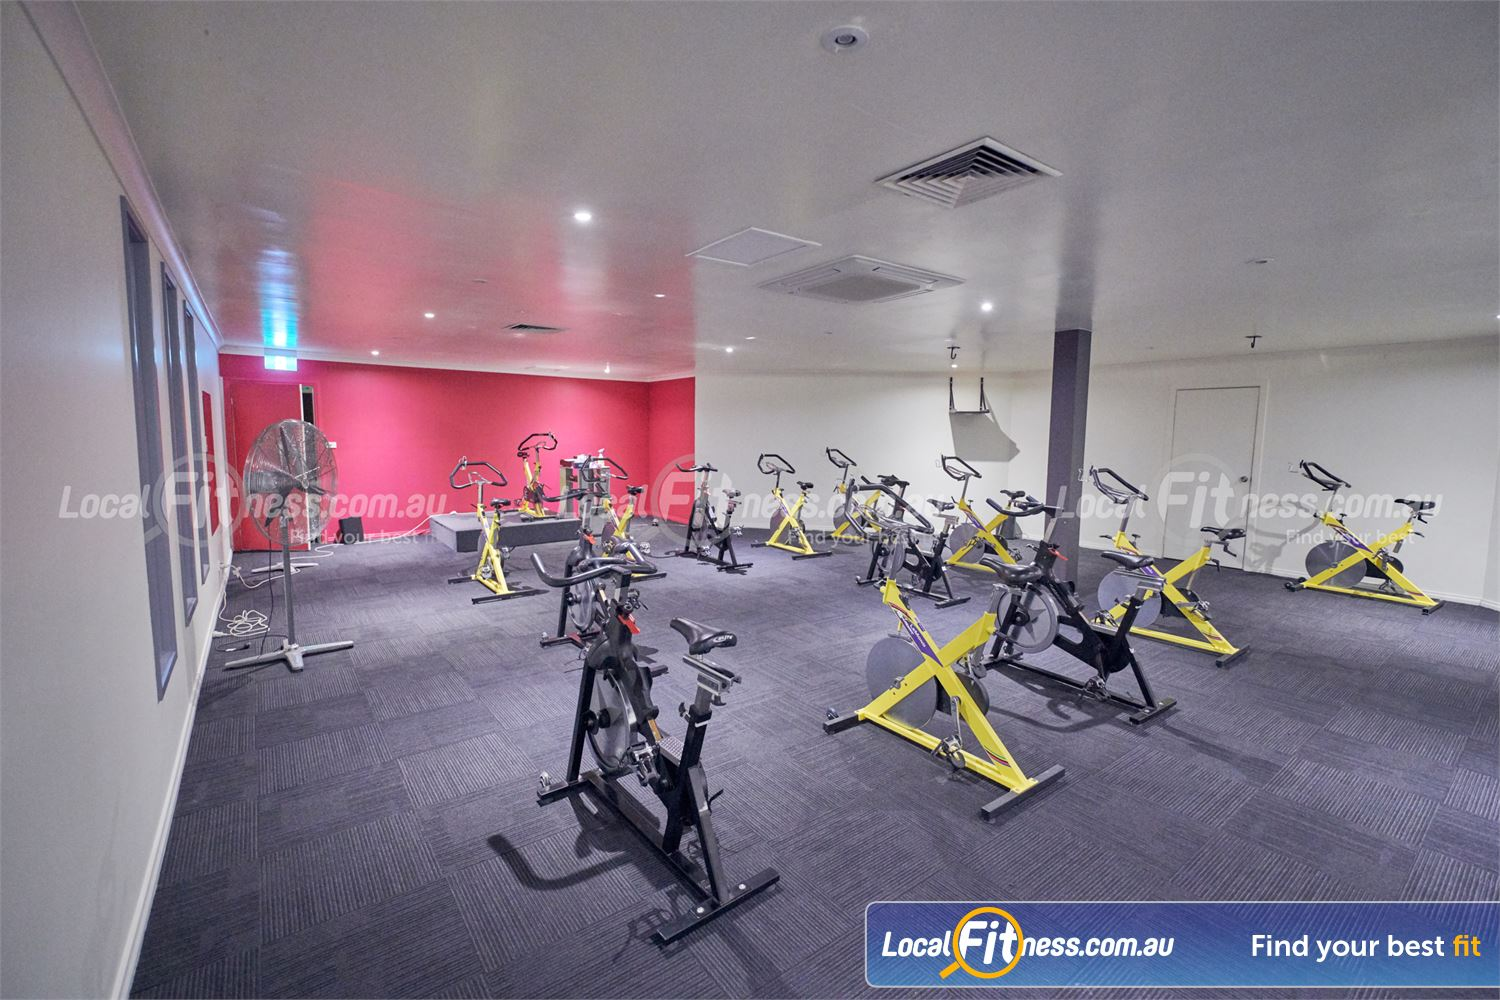 Fernwood Fitness Near Templestowe Lower Our Bulleen cycle instructors will take you on a calorie burning journey.